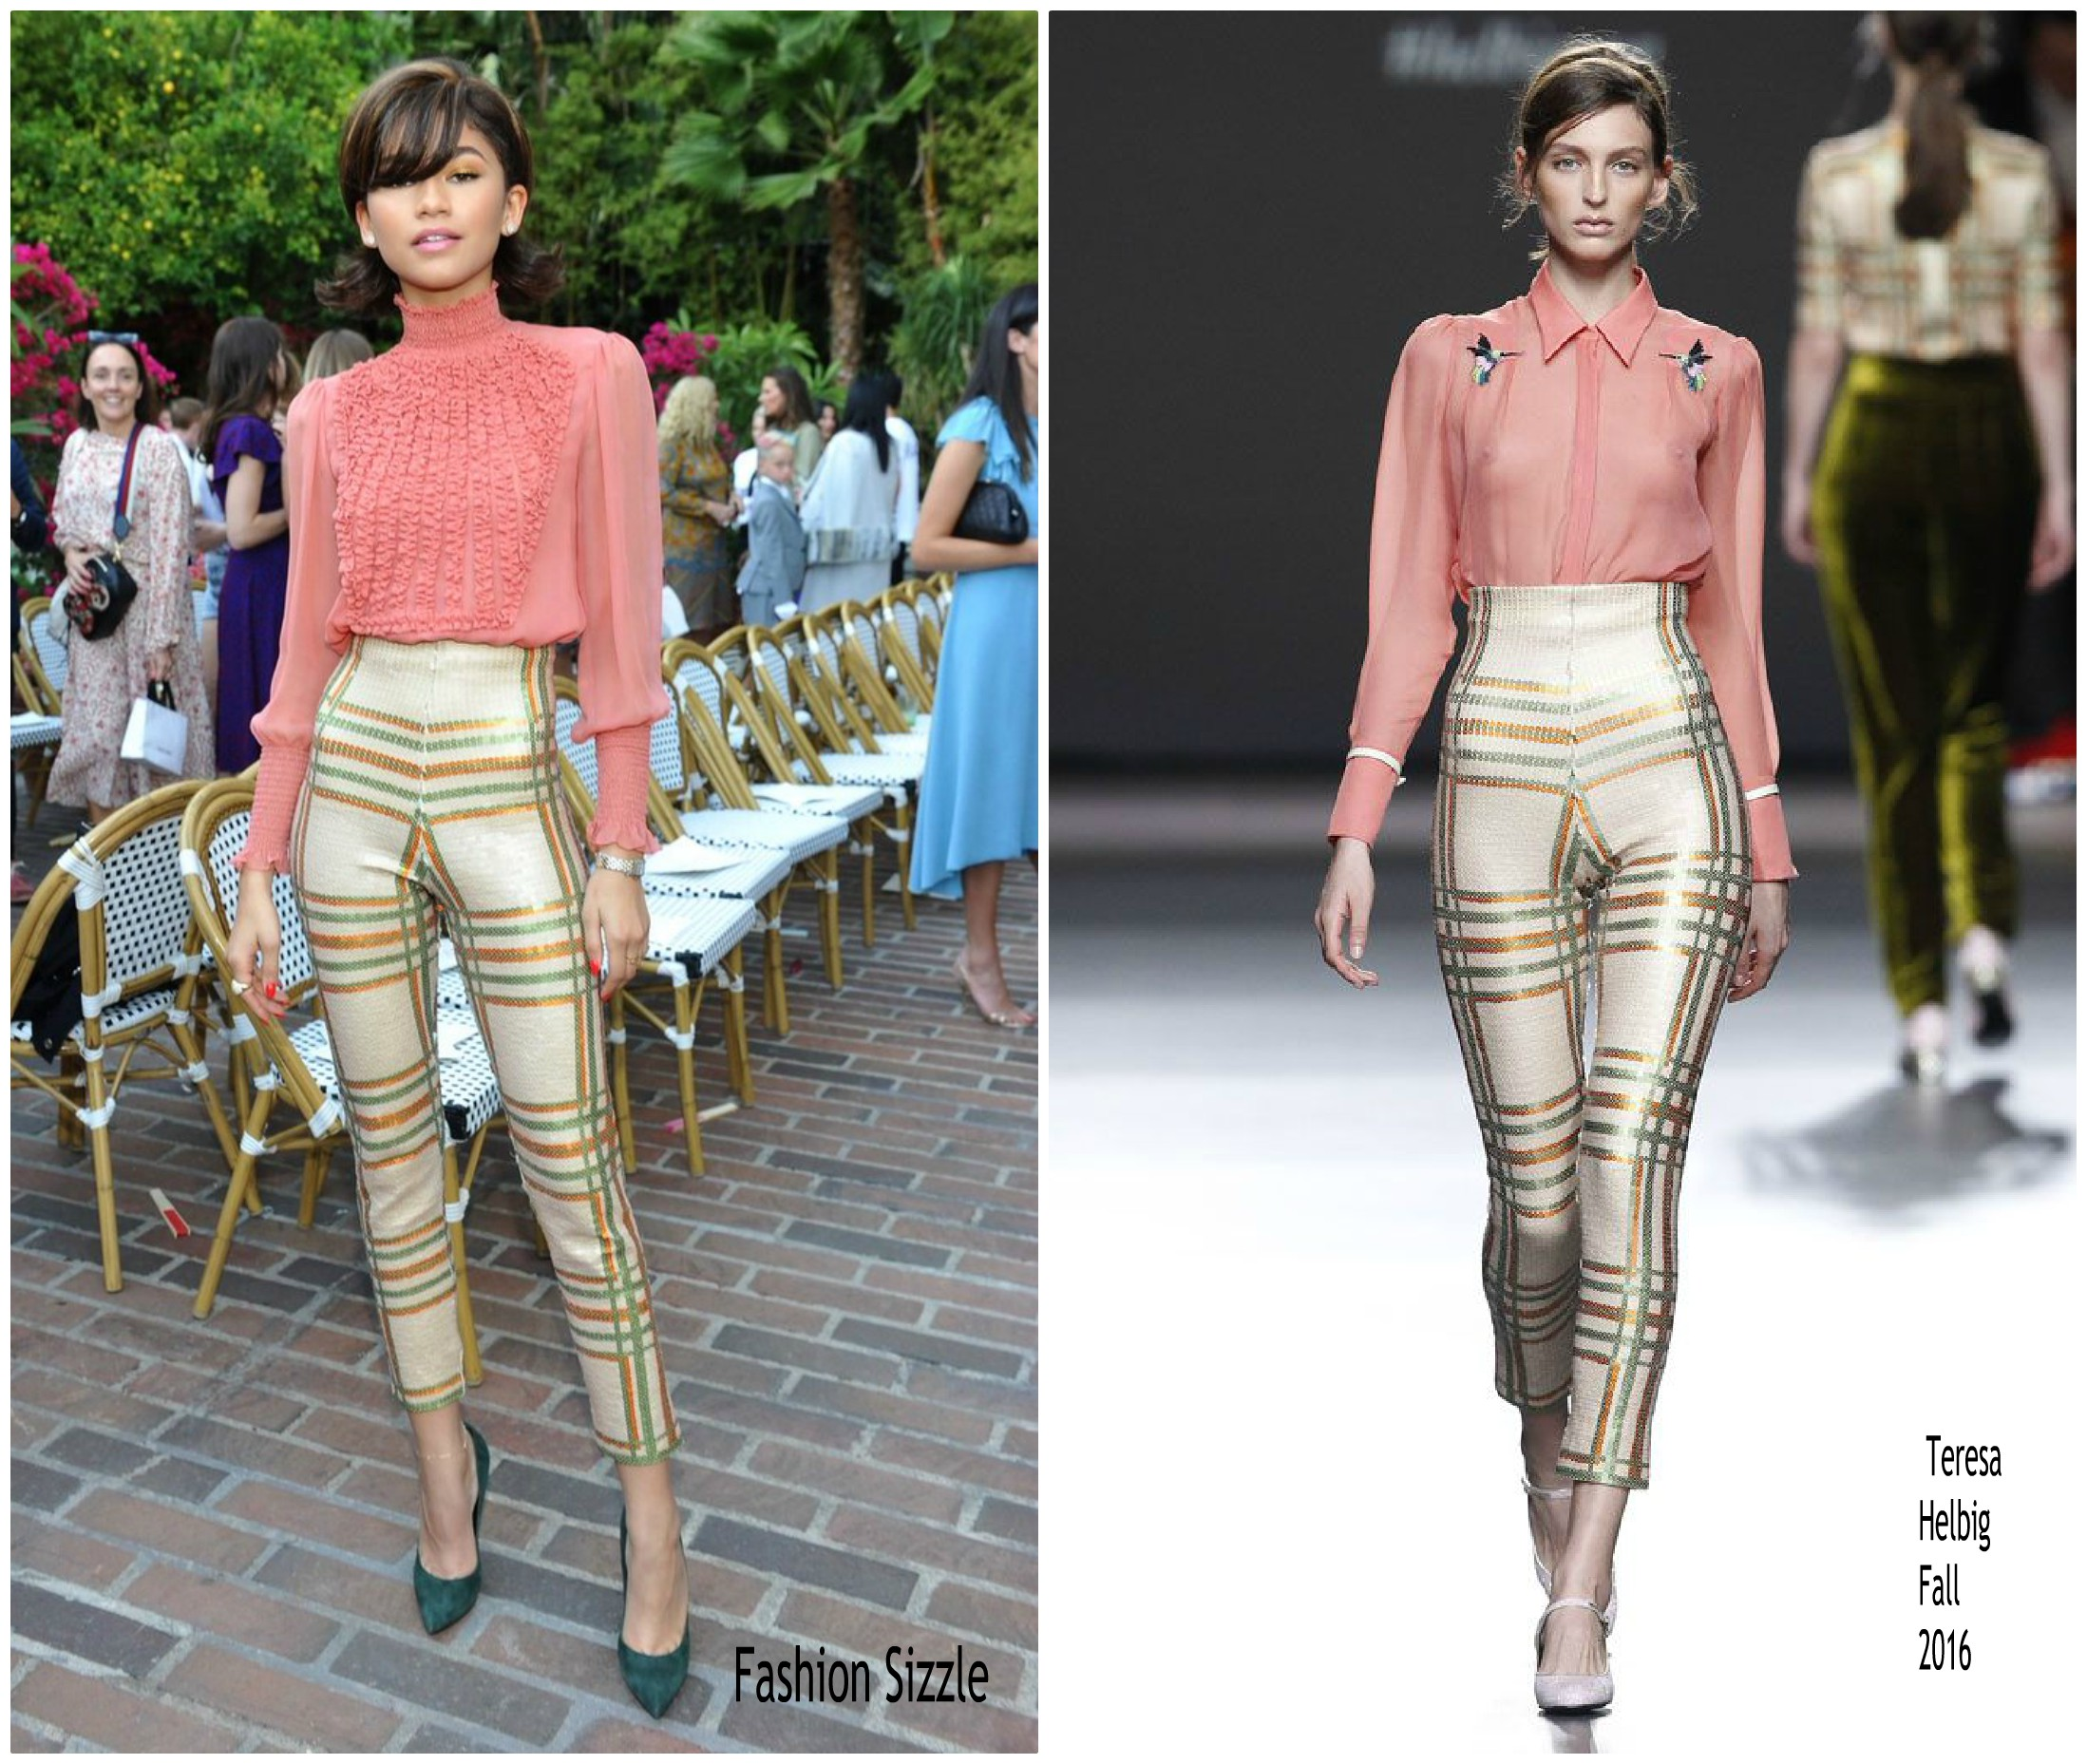 zendaya-coleman-in-teresa-helbig-cfda-vogue-fashion-fund-show